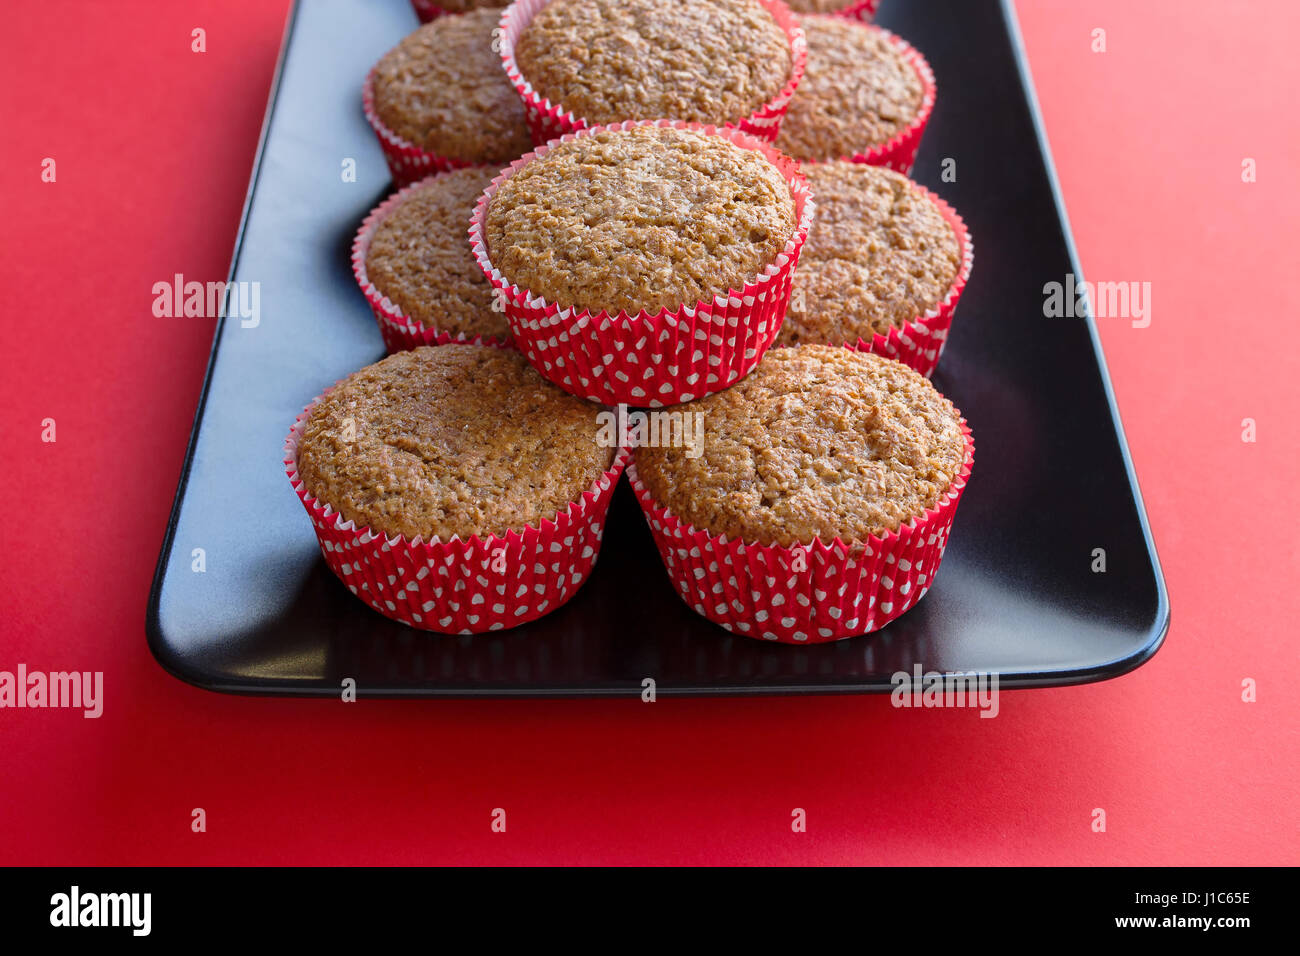 Bran muffins in bright red and white paper holders on a black rectangular plate and red background Stock Photo